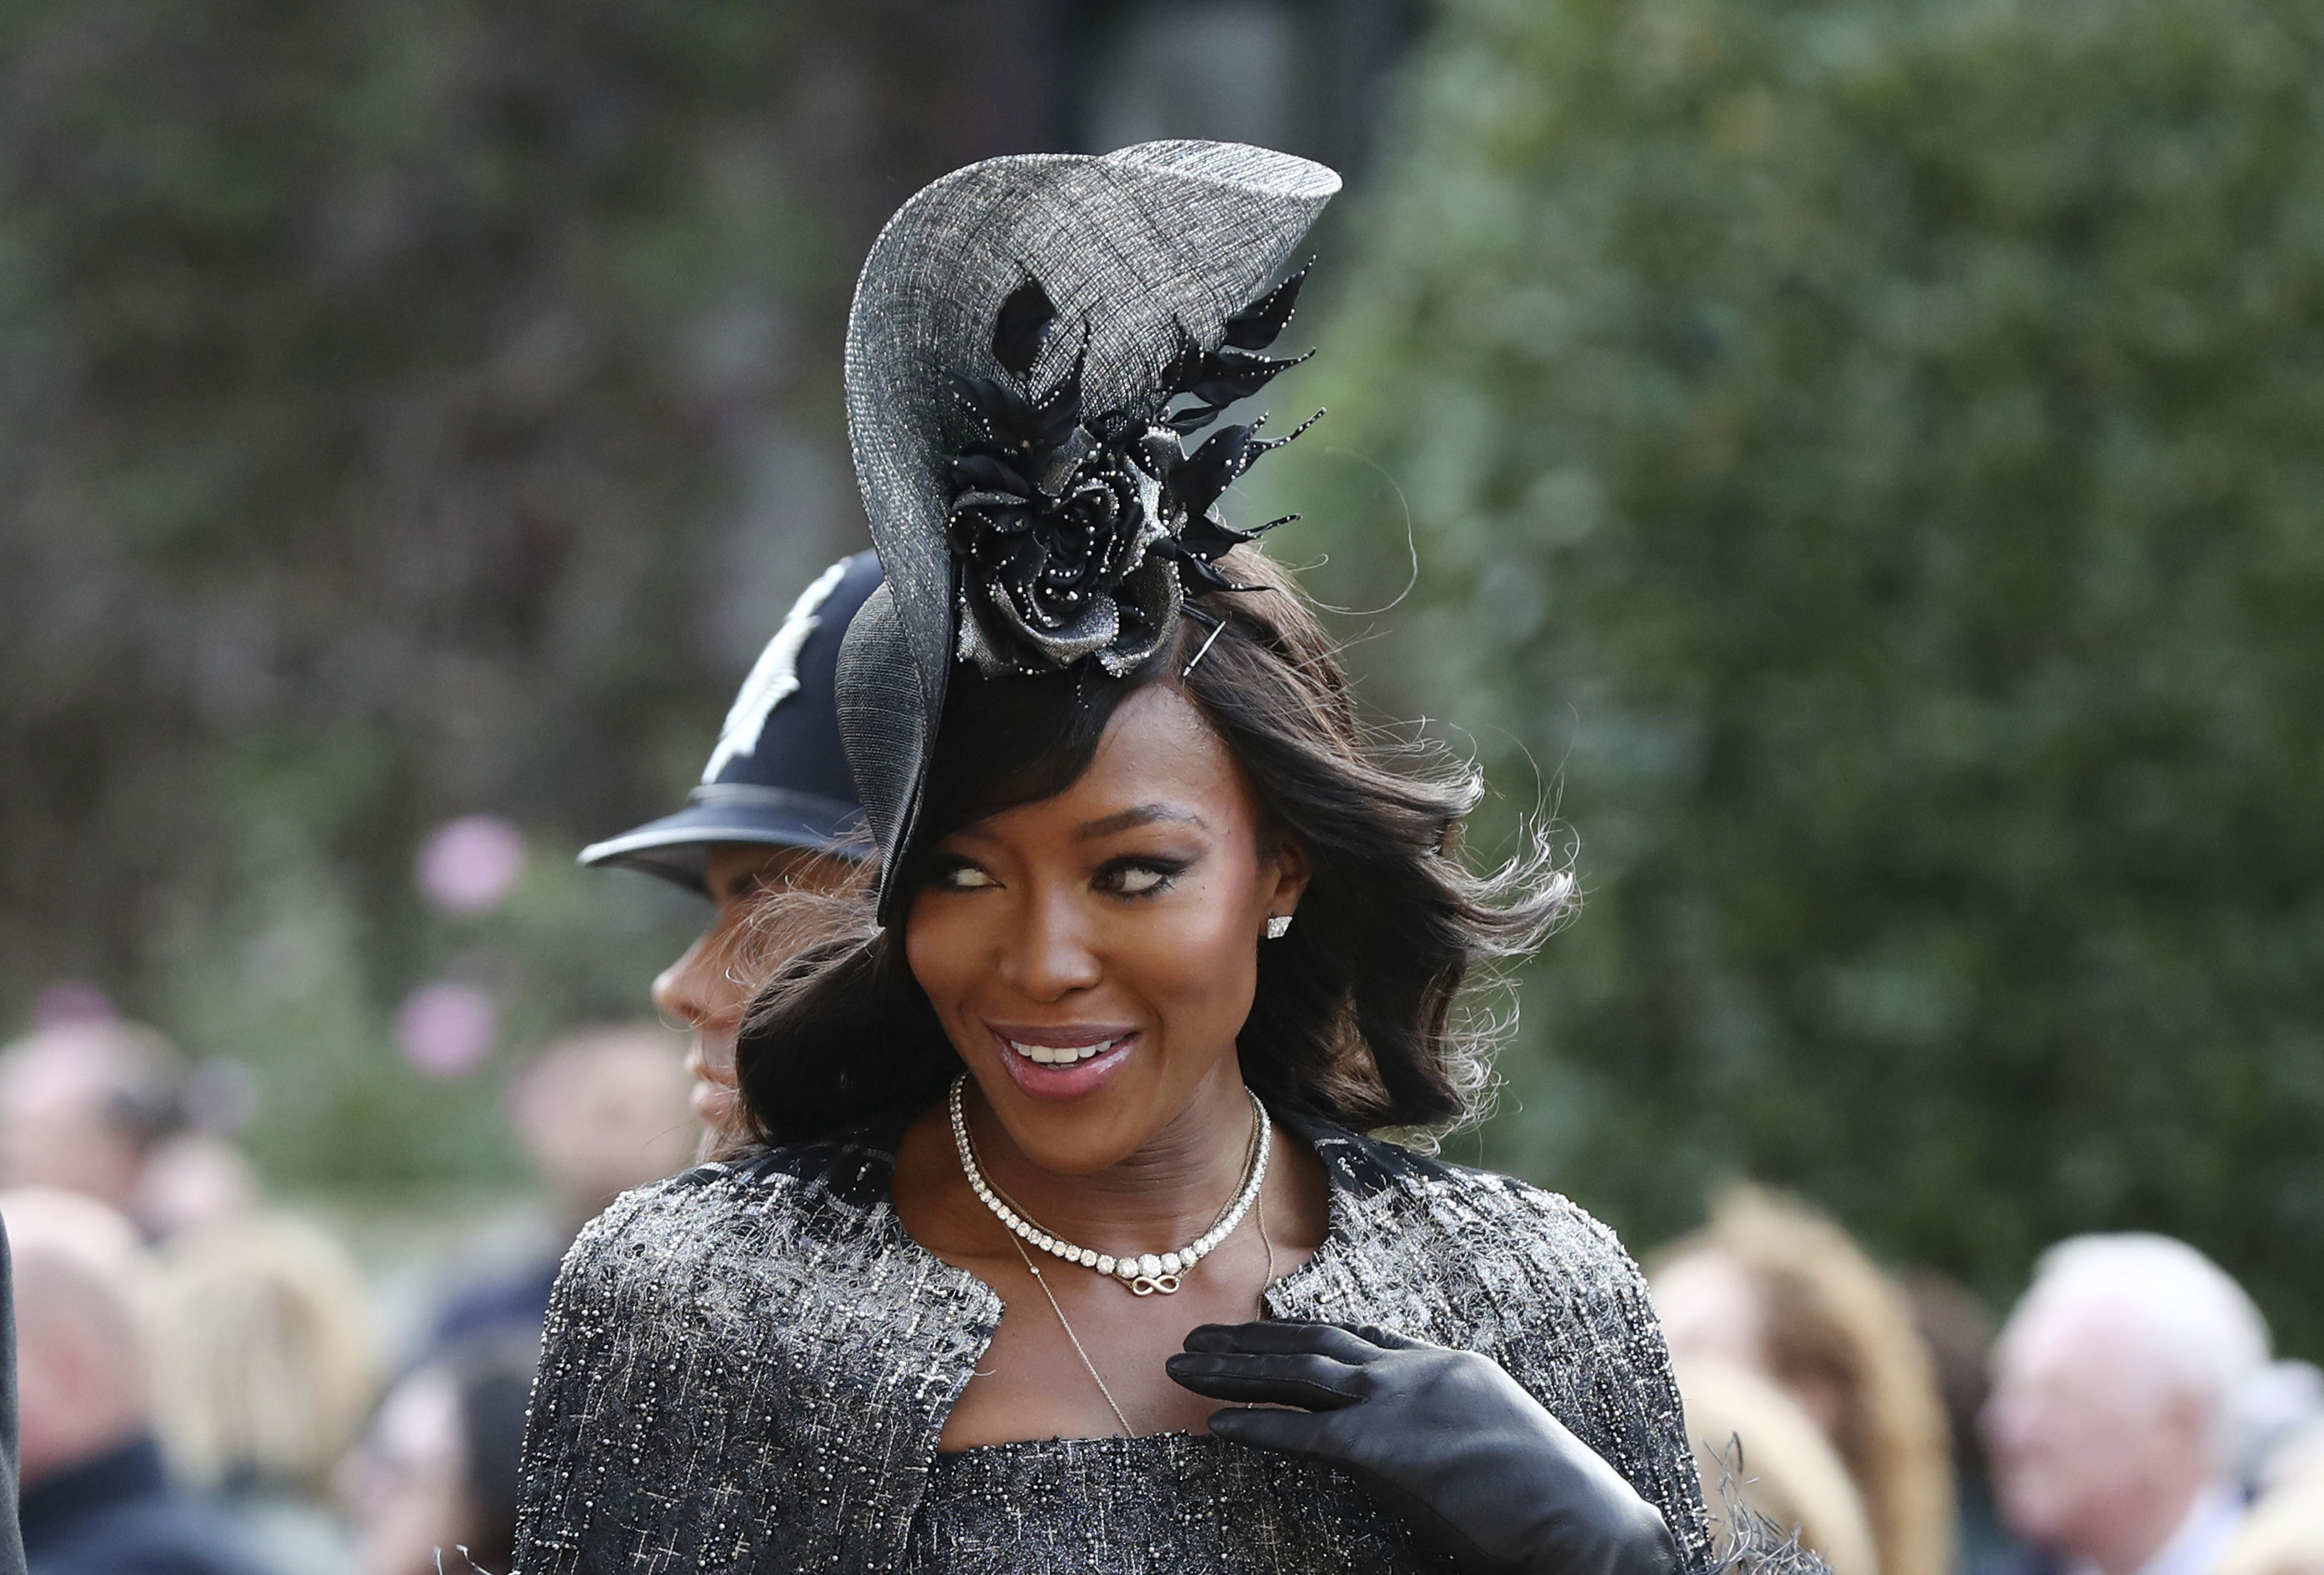 <div class='meta'><div class='origin-logo' data-origin='none'></div><span class='caption-text' data-credit='Gareth Fuller/Pool via AP'>Naomi Campbell arrives ahead of the wedding of Princess Eugenie of York and Jack Brooksbank at St George's Chapel, Windsor Castle, near London, England, Friday Oct. 12, 2018.</span></div>